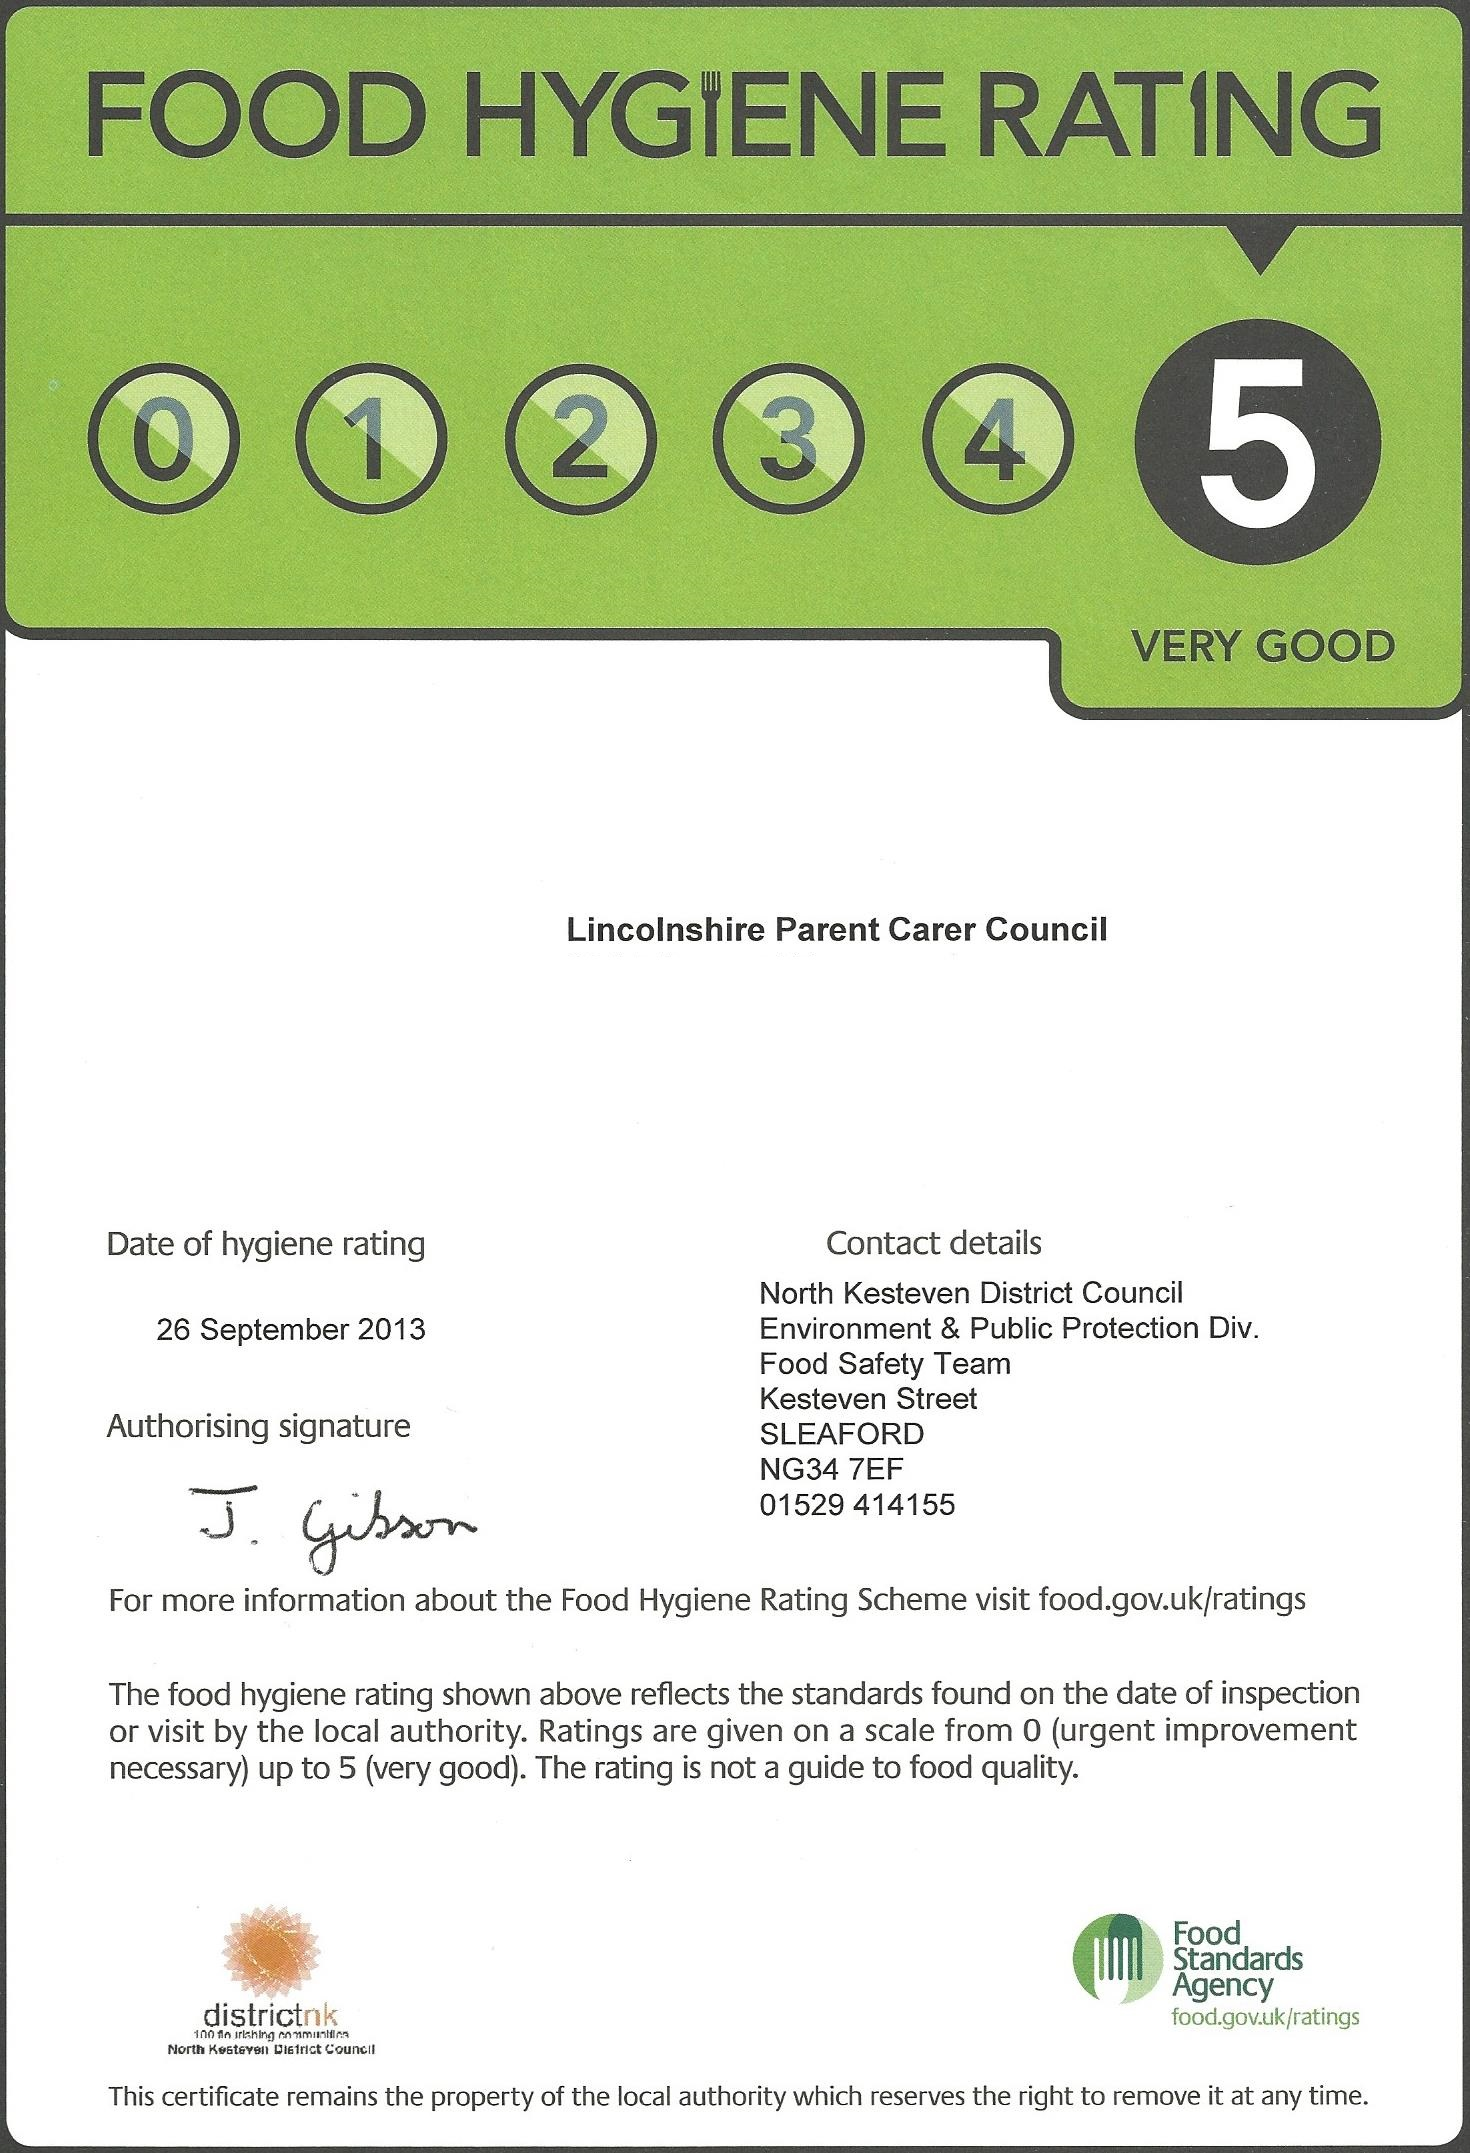 lpcc achievements see full size certificate